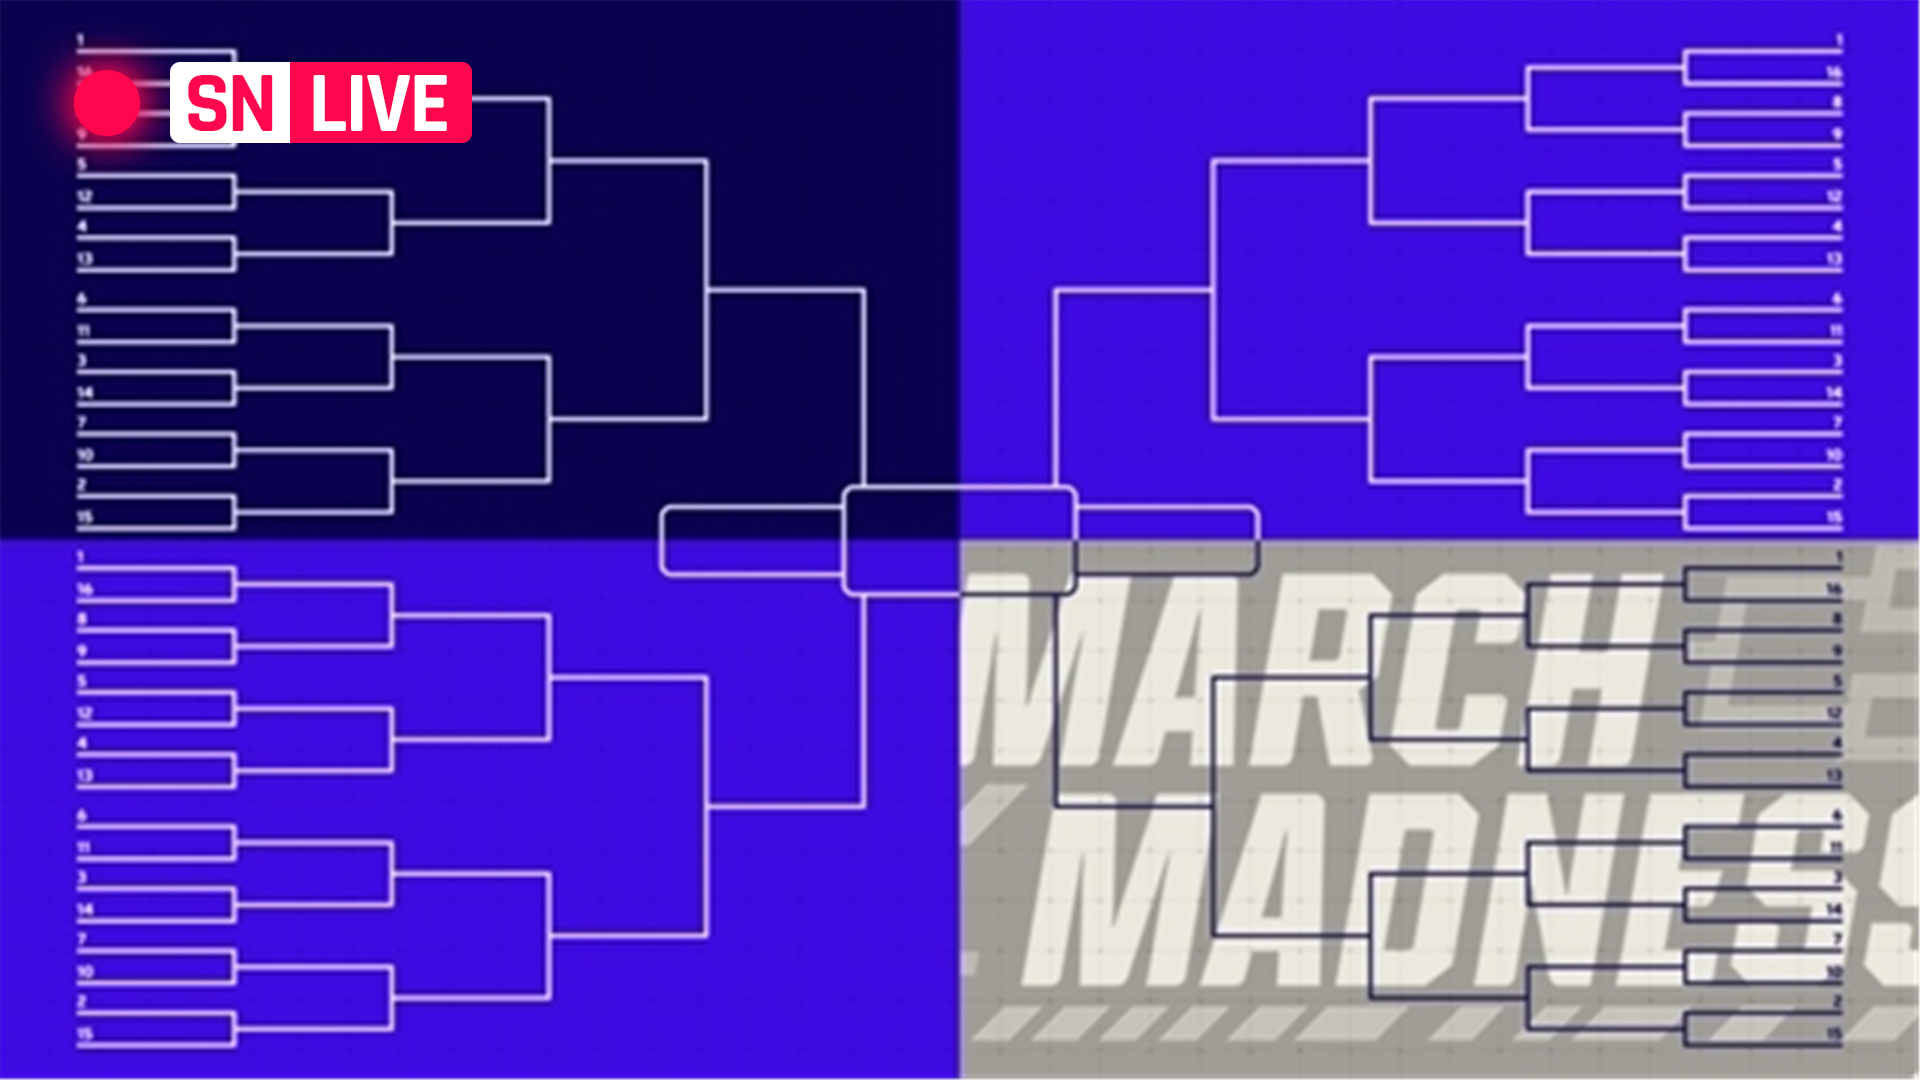 March Madness Live Streams: How to Watch 2021 NCAA Championship Games for Free Without Cable